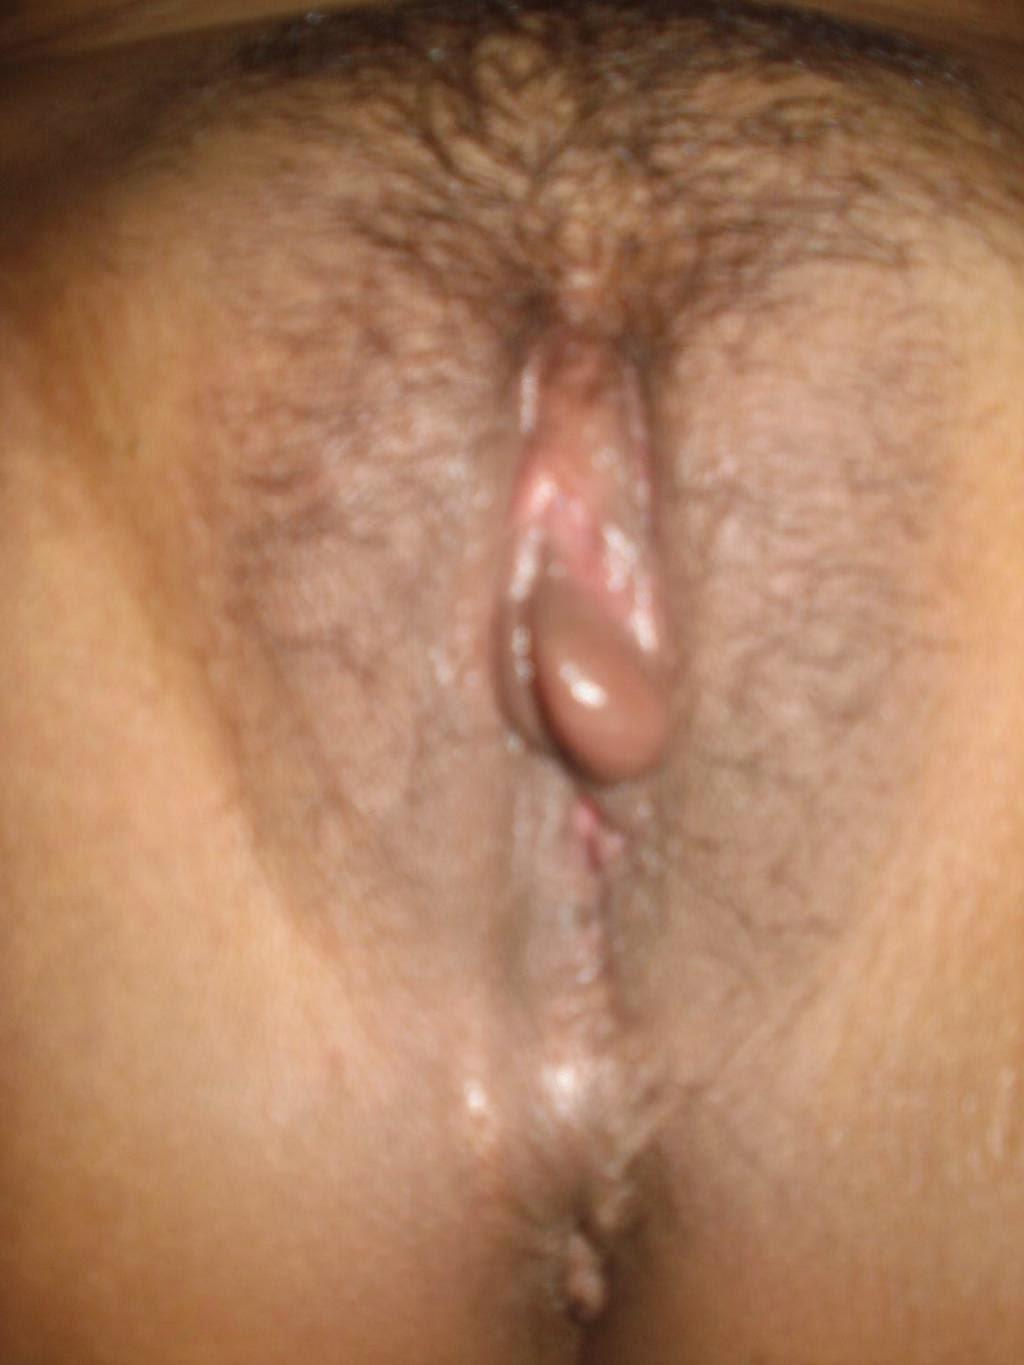 Memek Close Up Crot Didalem